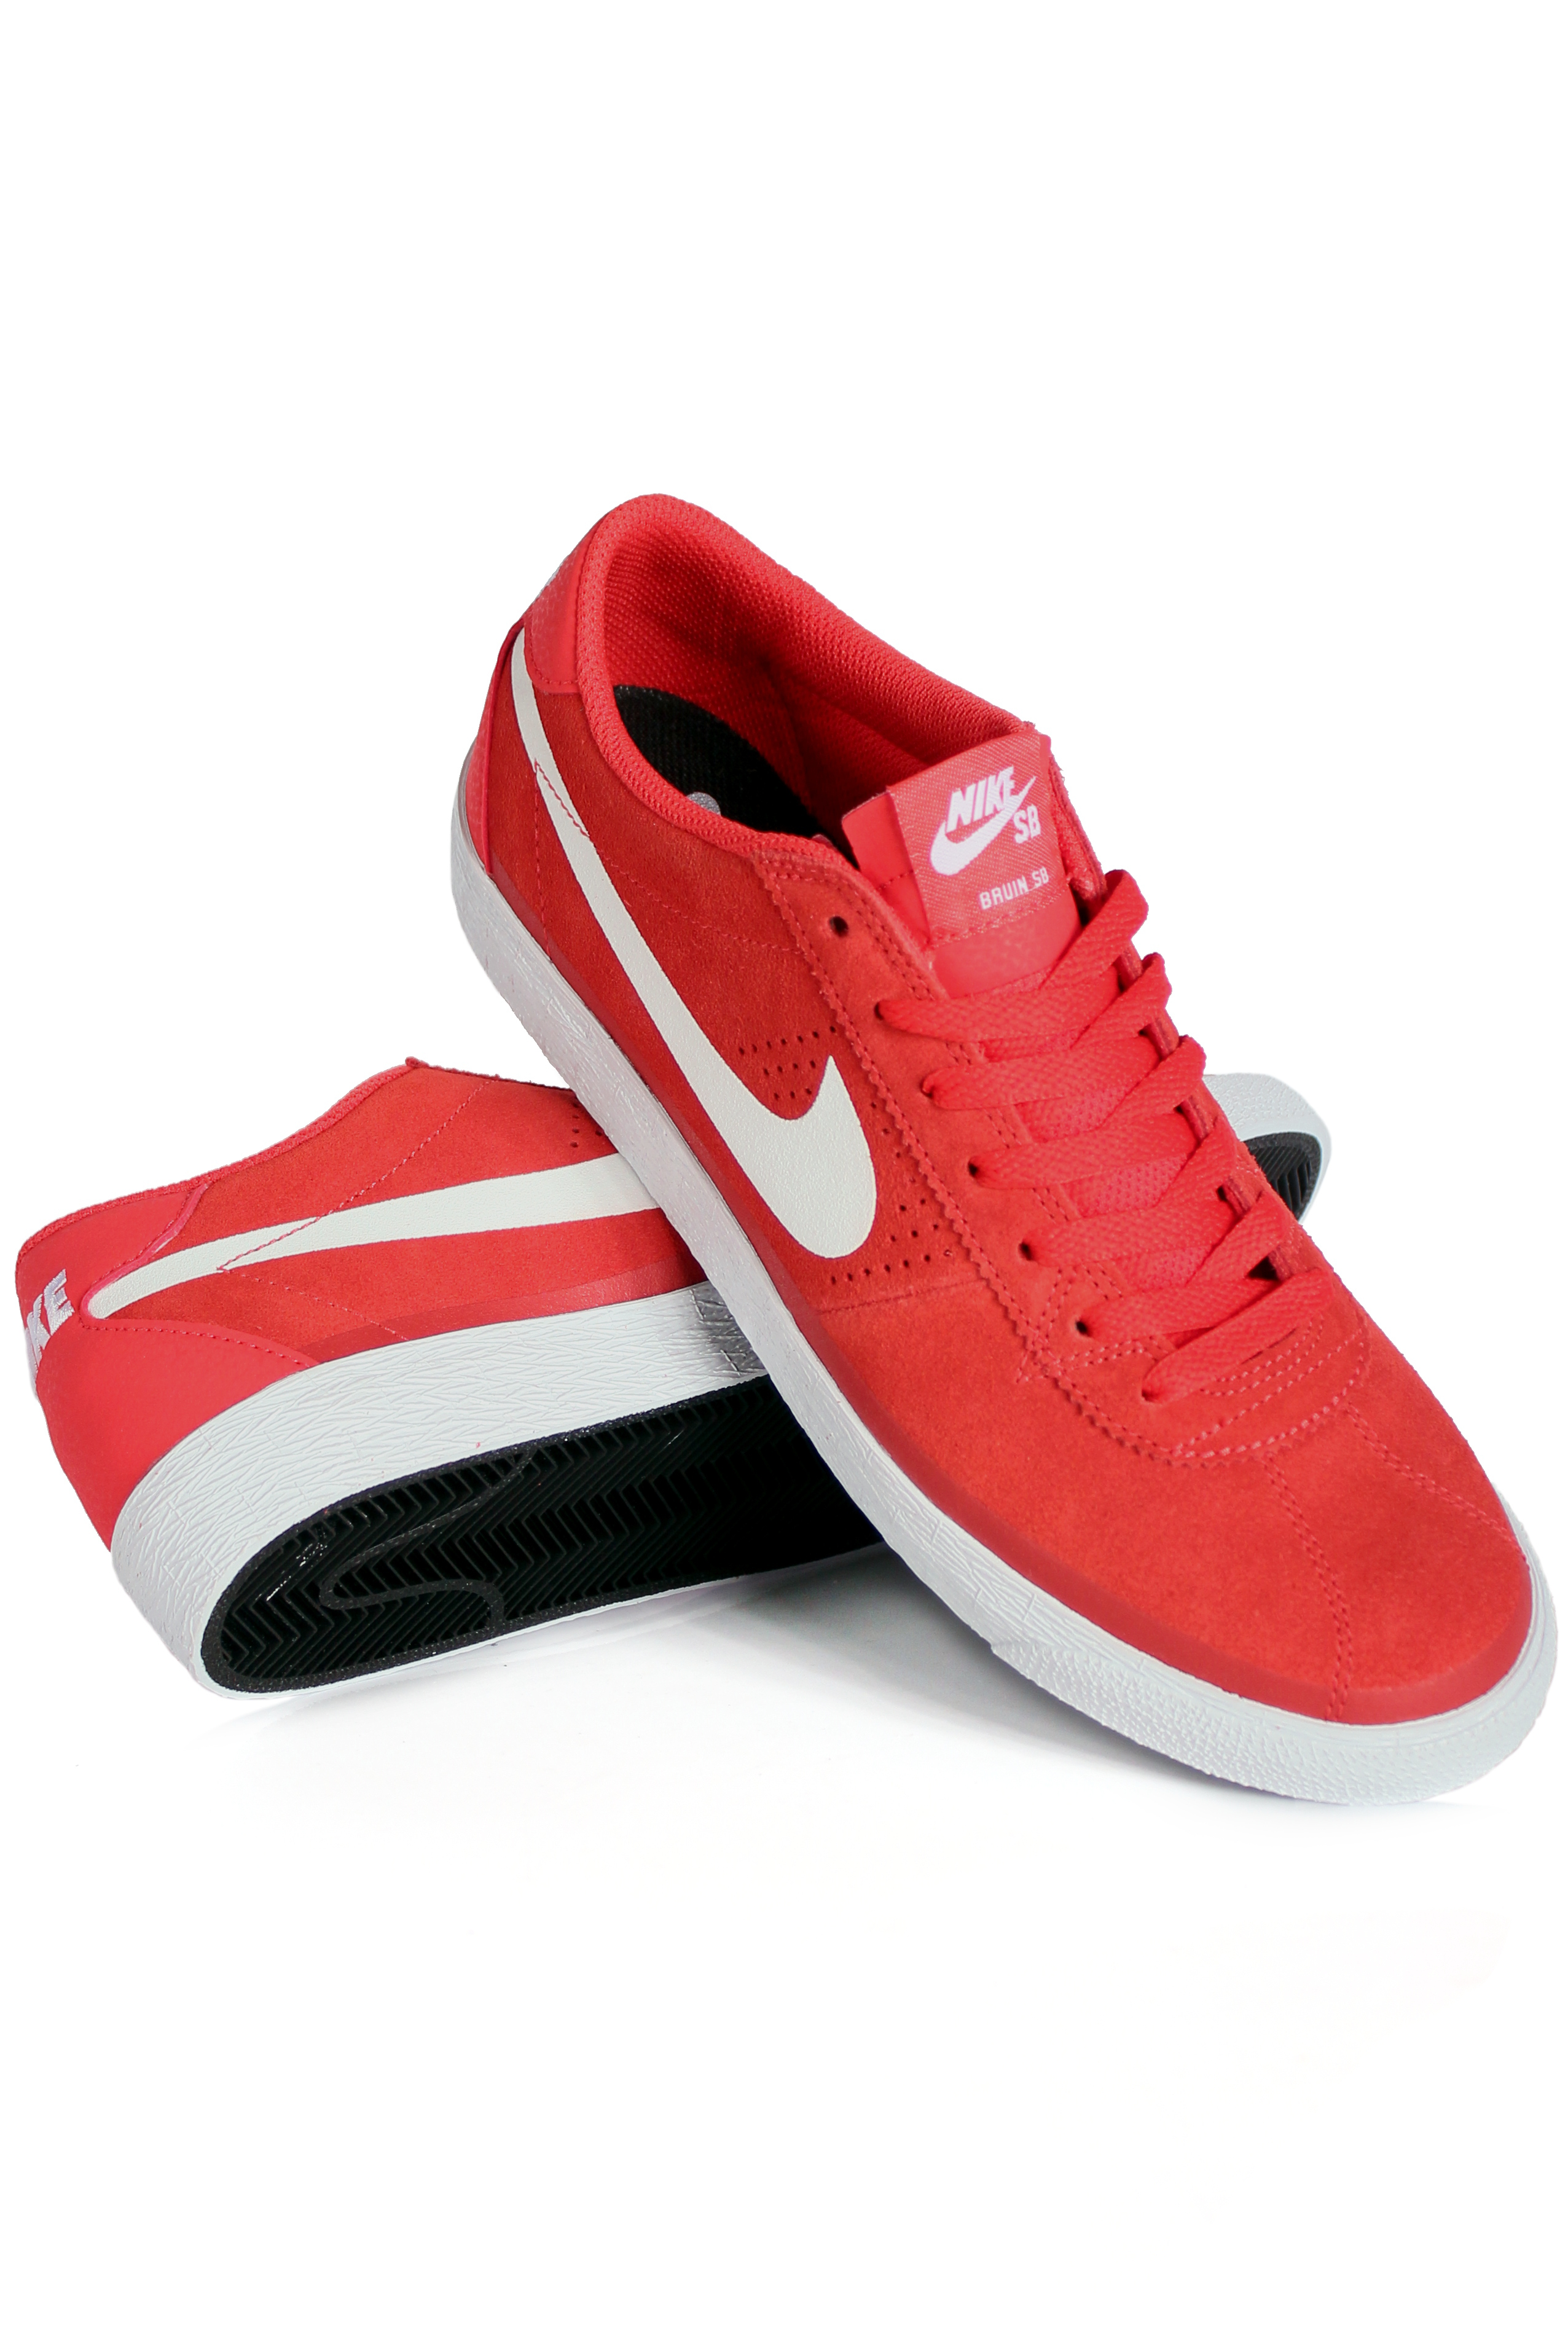 Nike Sb Zoom Bruin Premium (Light Crimson)